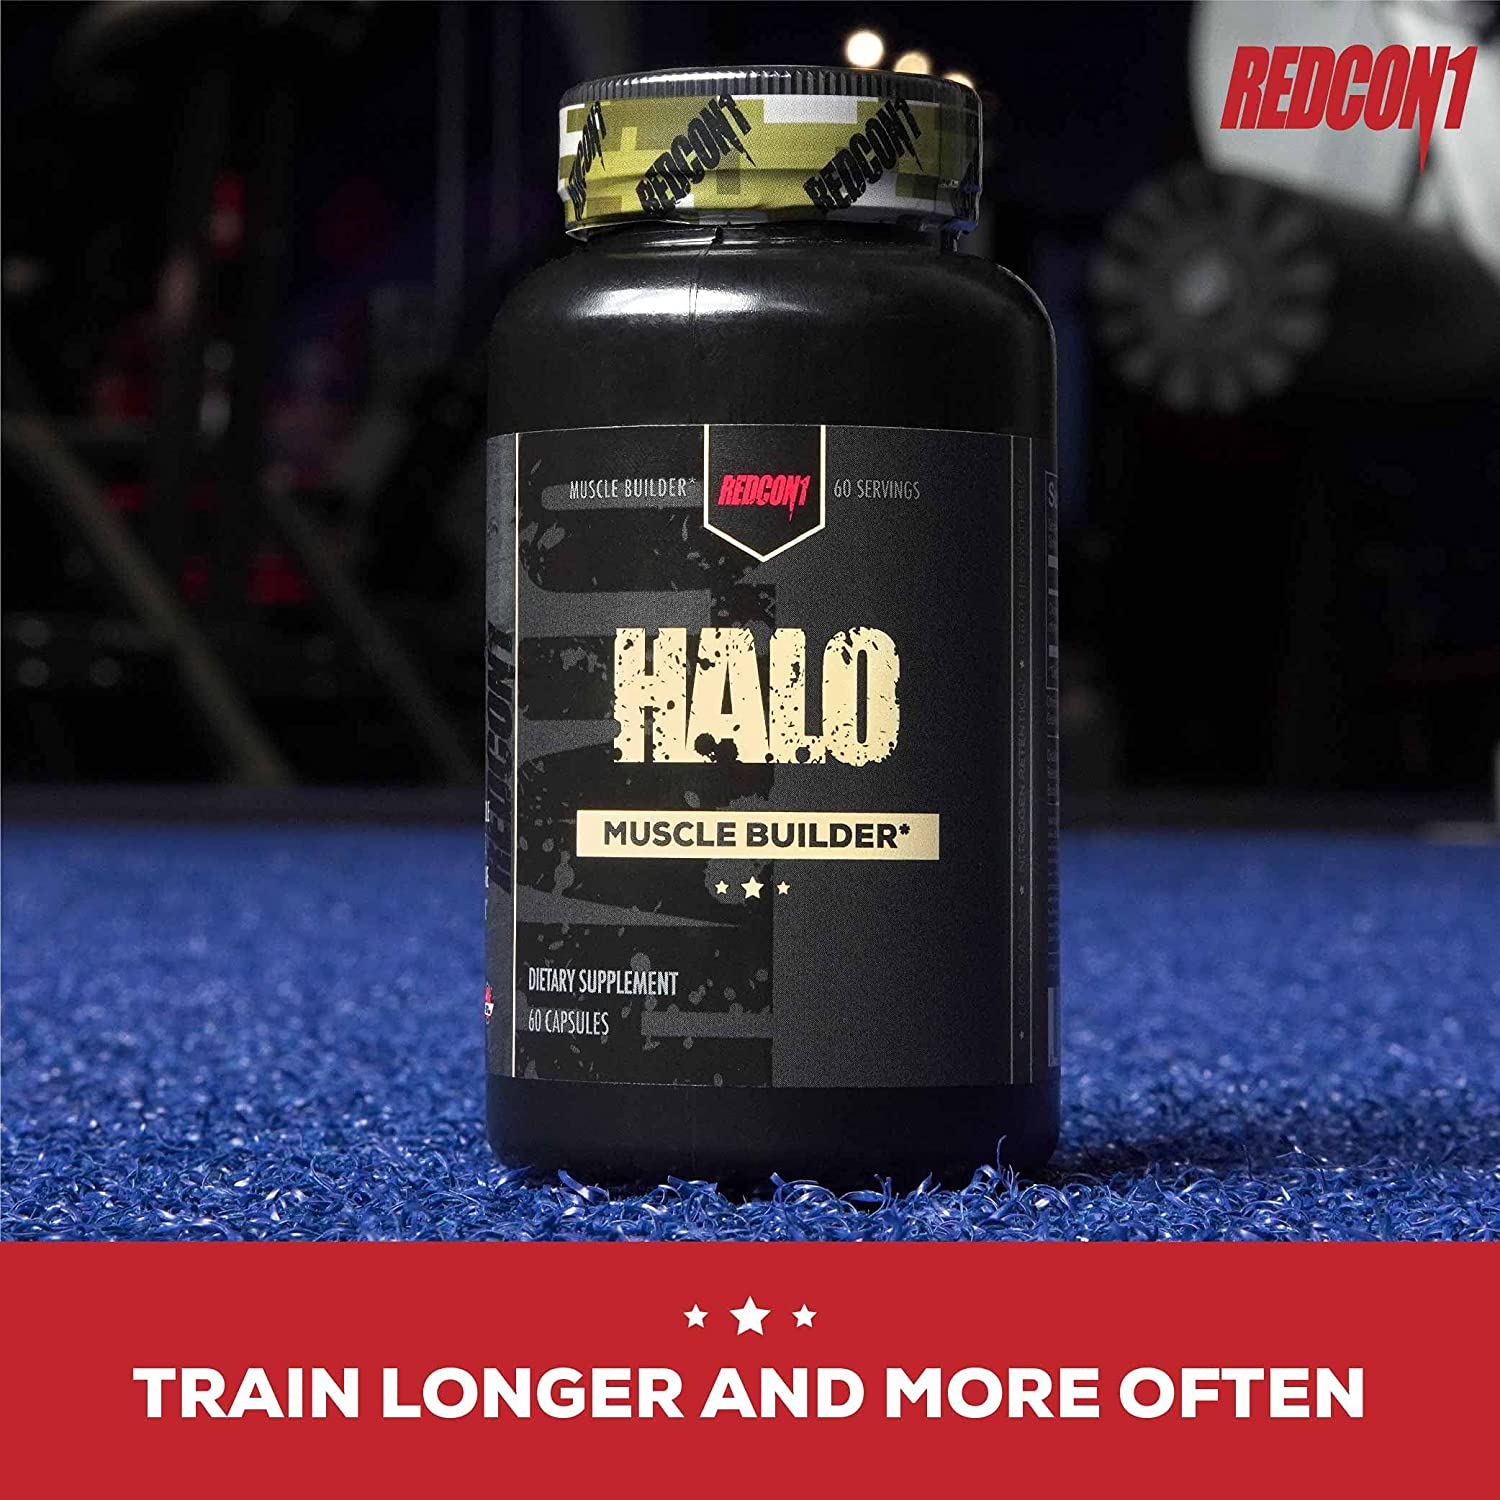 Buy Redcon1 - Halo - 60 Servings, Muscle Builder, Increase Lean Gains and Muscle Mass, Increase Protein Synthesis Online in Vietnam. B082T24Q27